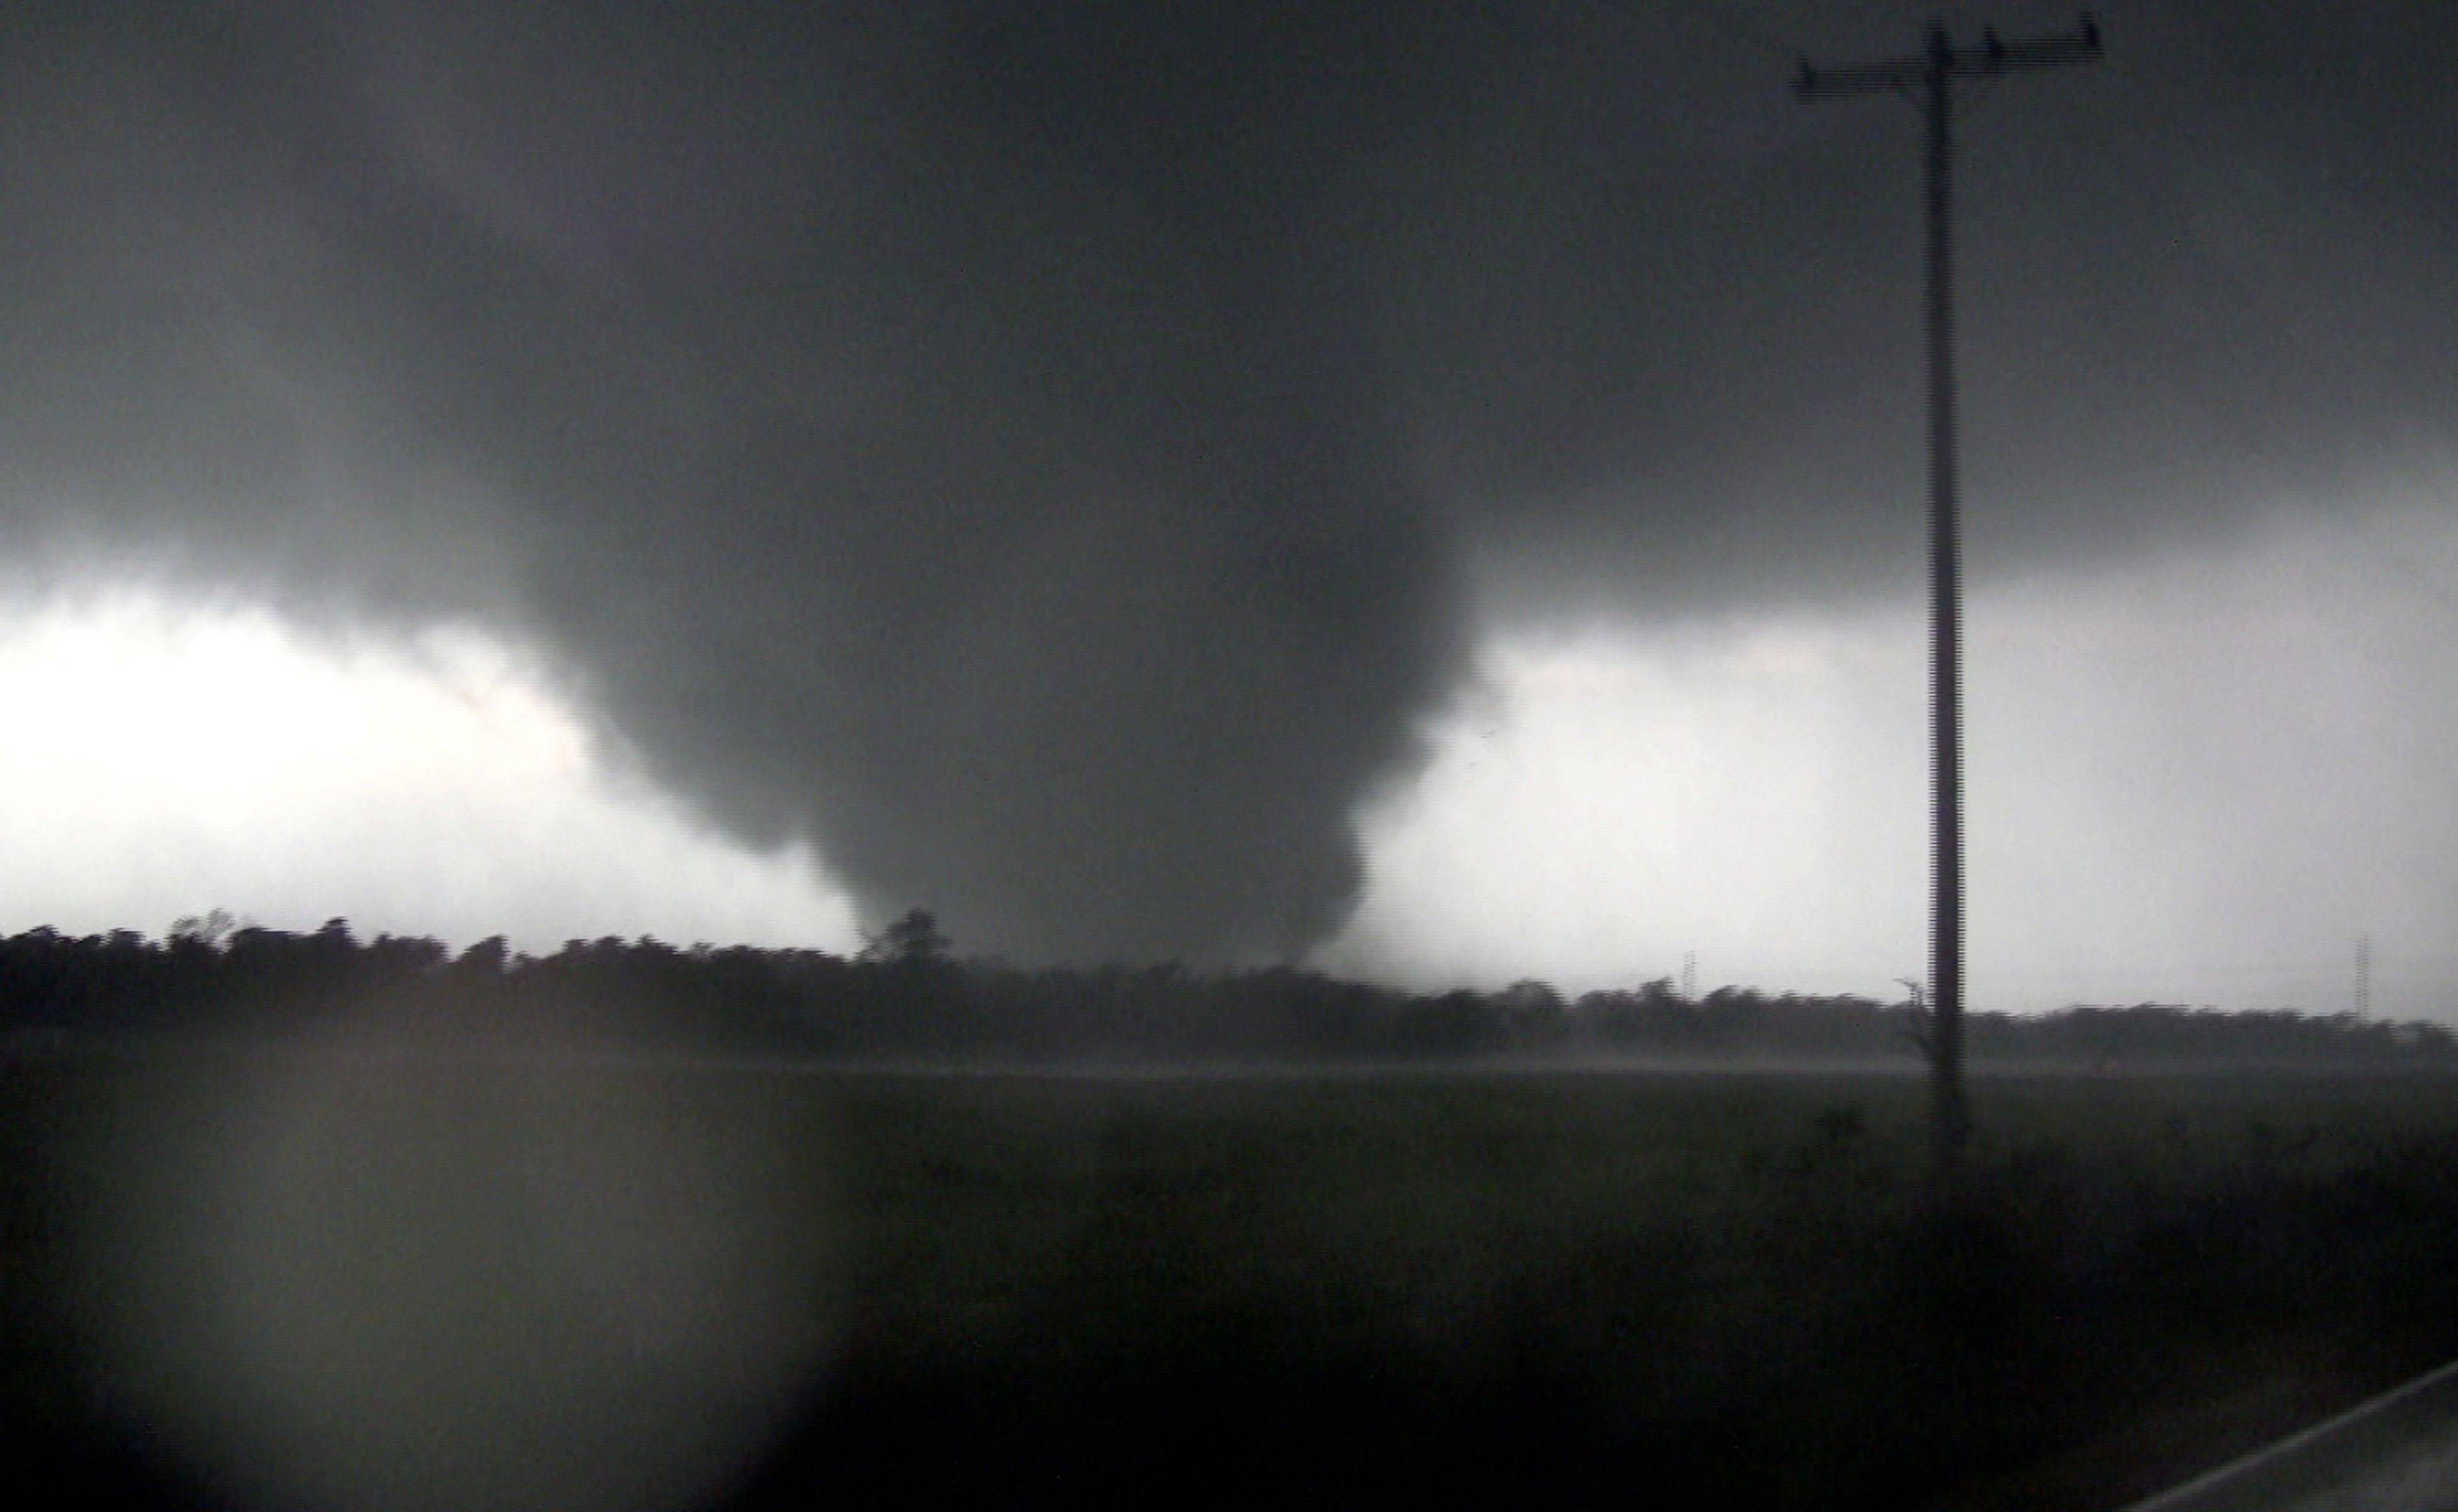 Updated images: Tornado tears apart Joplin, Mo.